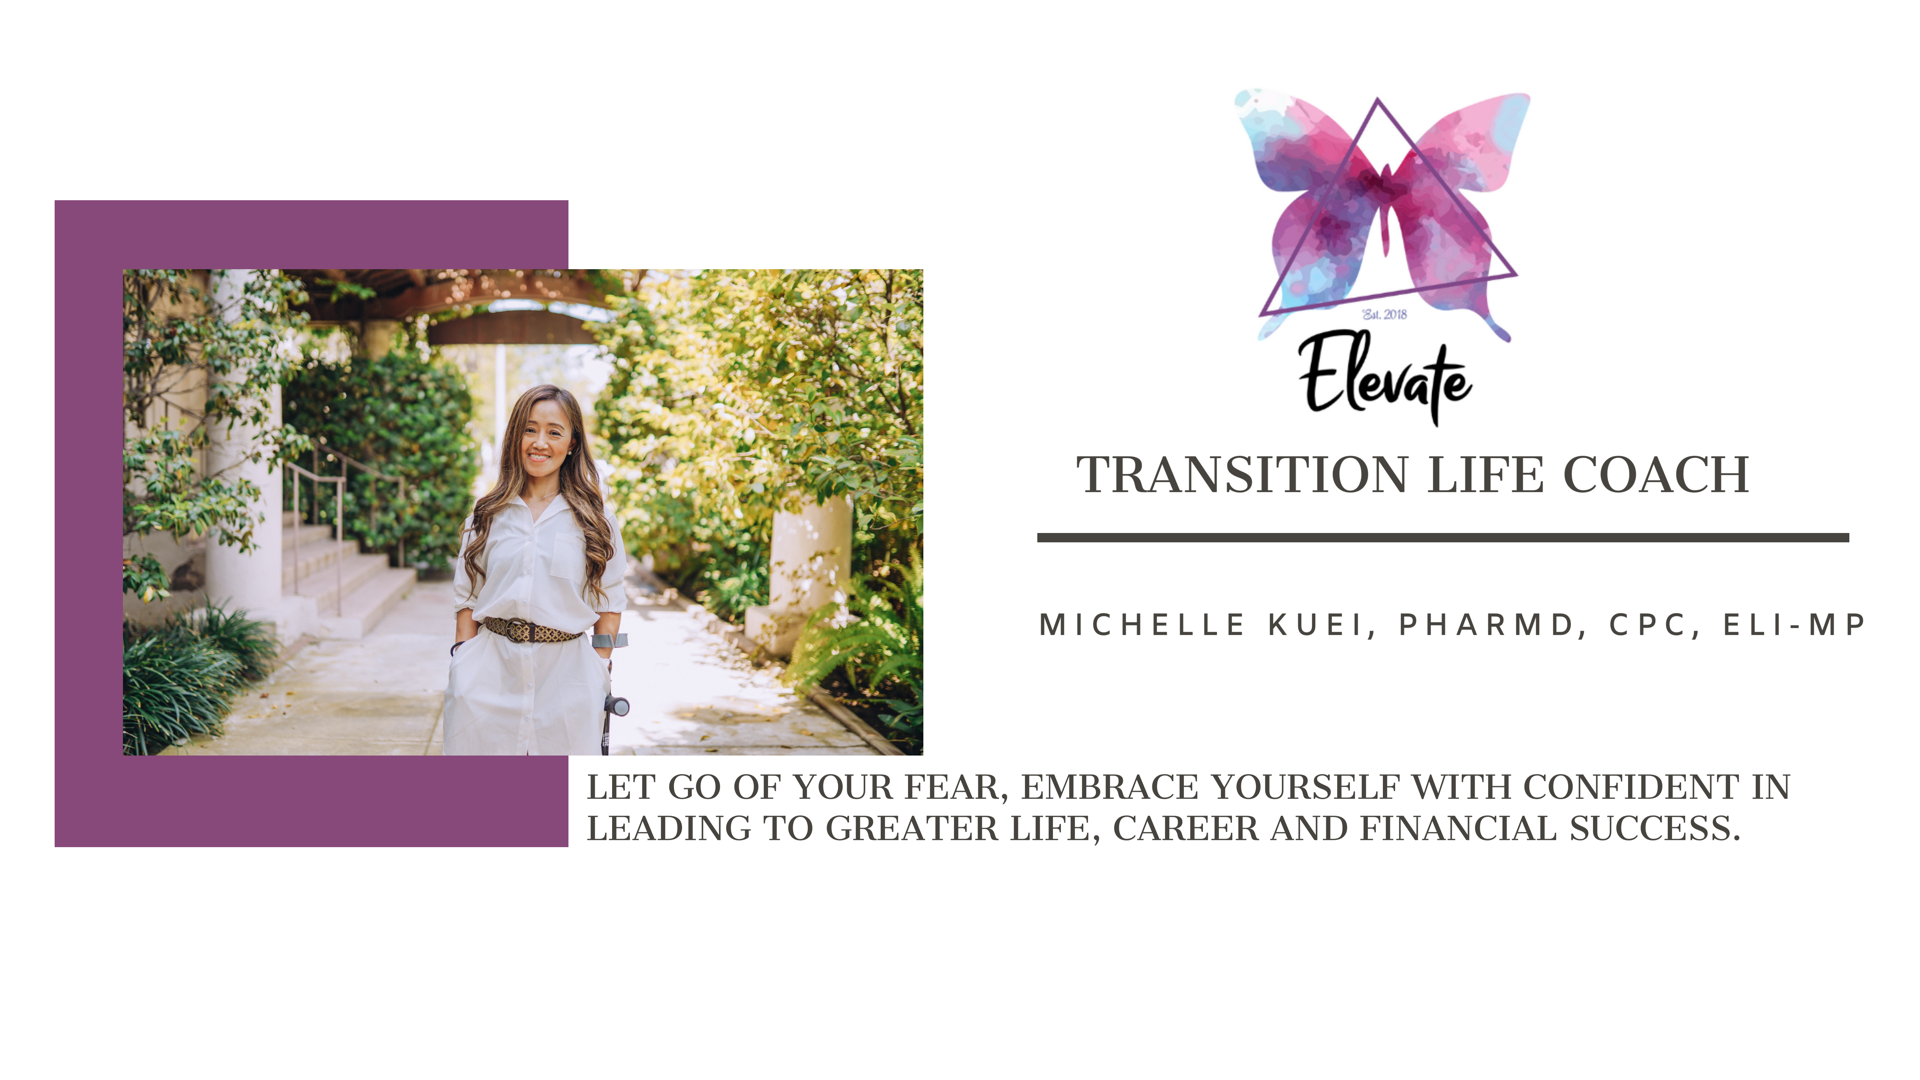 Rebuilding Your Life After Major Transitions